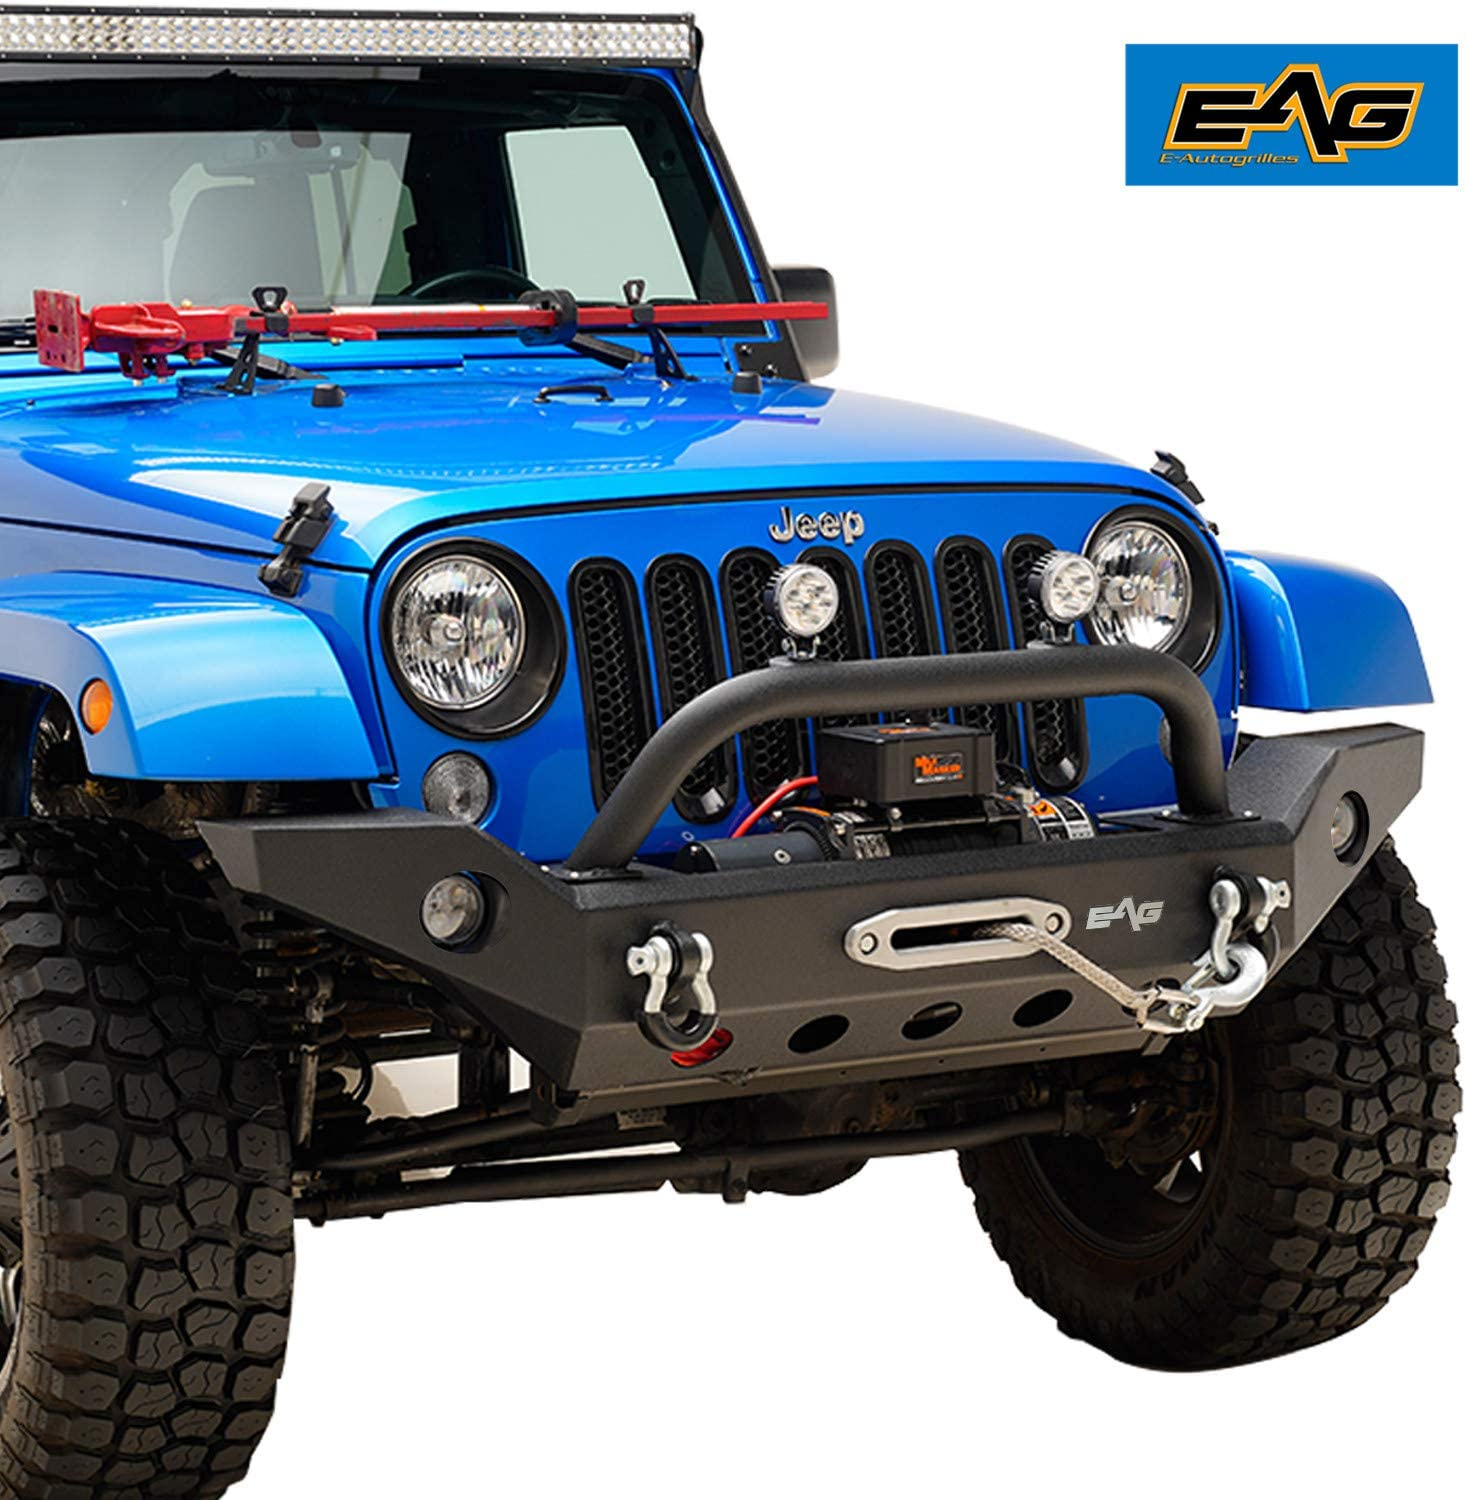 Jeep Wrangler Fog Lights >> Eag Fits 07 18 Jeep Wrangler Jk Front Bumper With Fog Light Hole Offroad